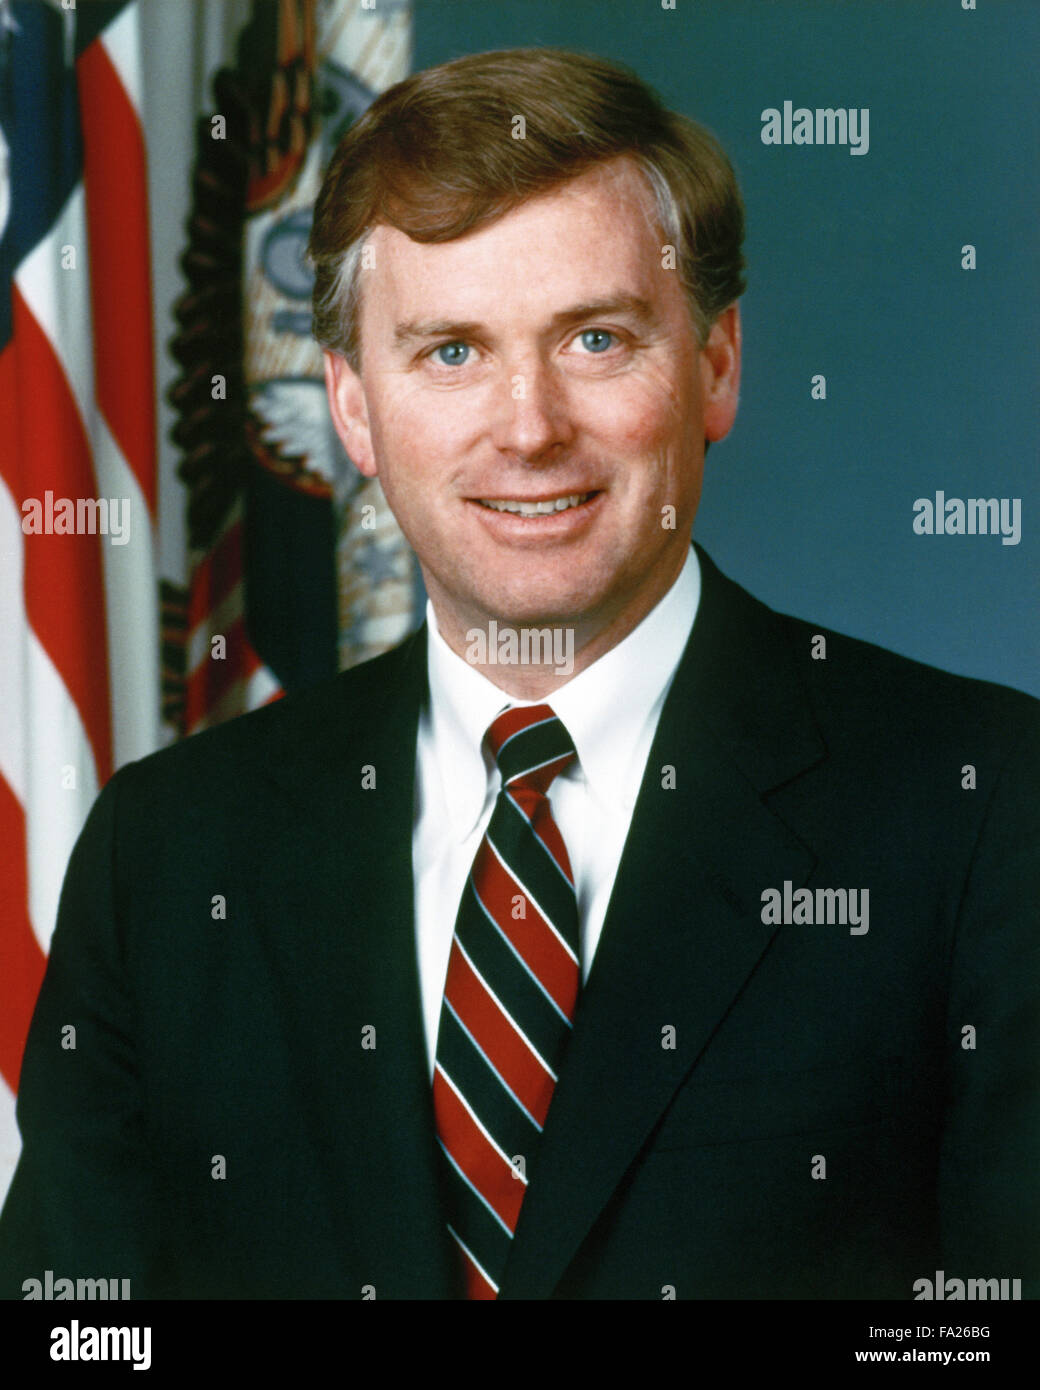 James Danforth 'Dan' Quayle, American politician and the 44th Vice President of the United States (1989–93) - Stock Image